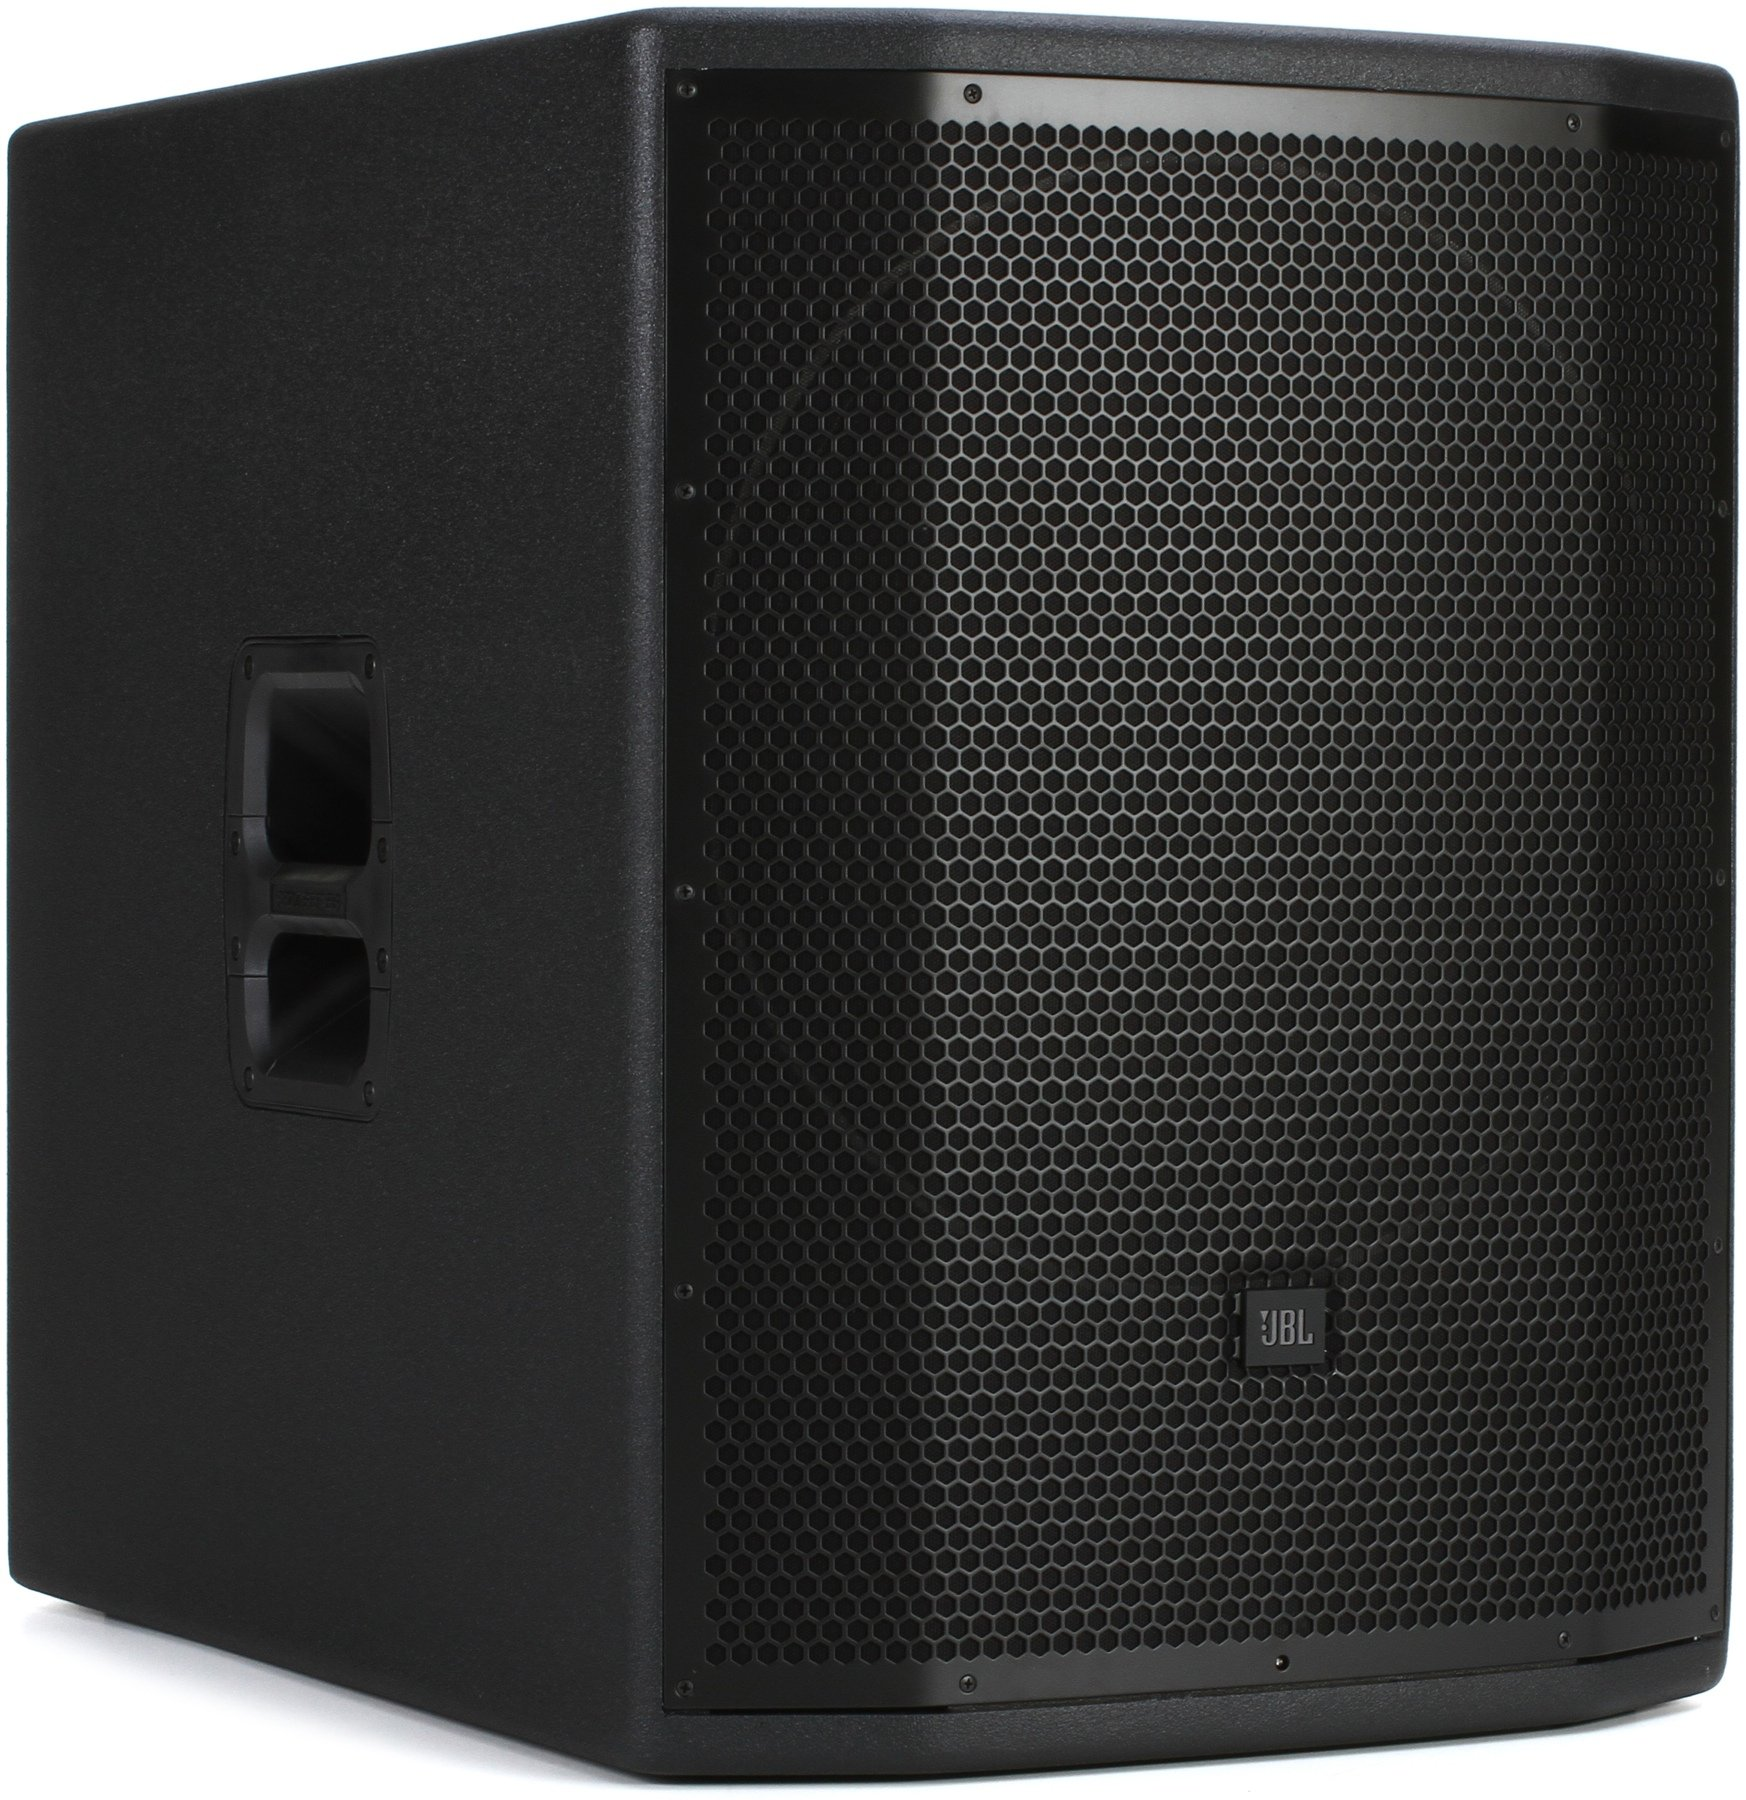 Jbl Prx818xlfw 1500w 18 Powered Subwoofer Sweetwater Semiconductor Datasheets Crossover Amplifier Image 1